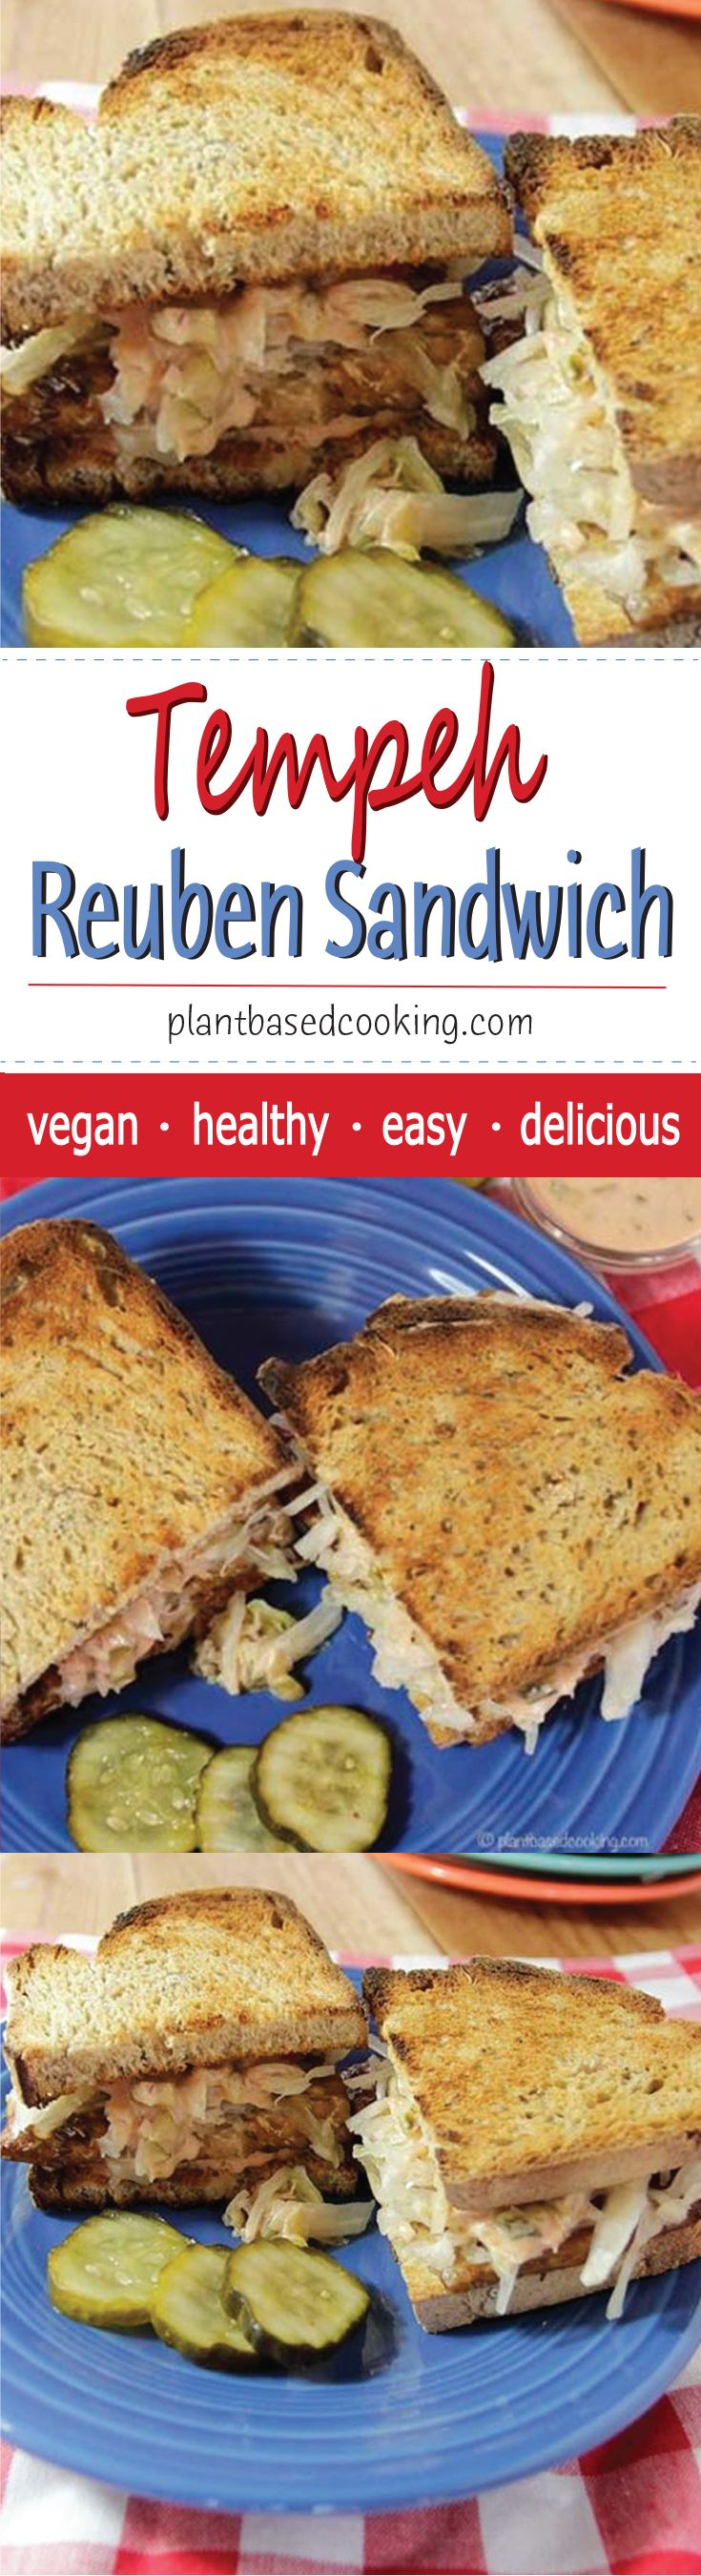 Tempeh Reuben Sandwich - This vegan version of a reuben sandwich is every bit as satisfying as the original and may boost the health of your gut bacteria. #plantbased #vegan #wfpb #healthyfood